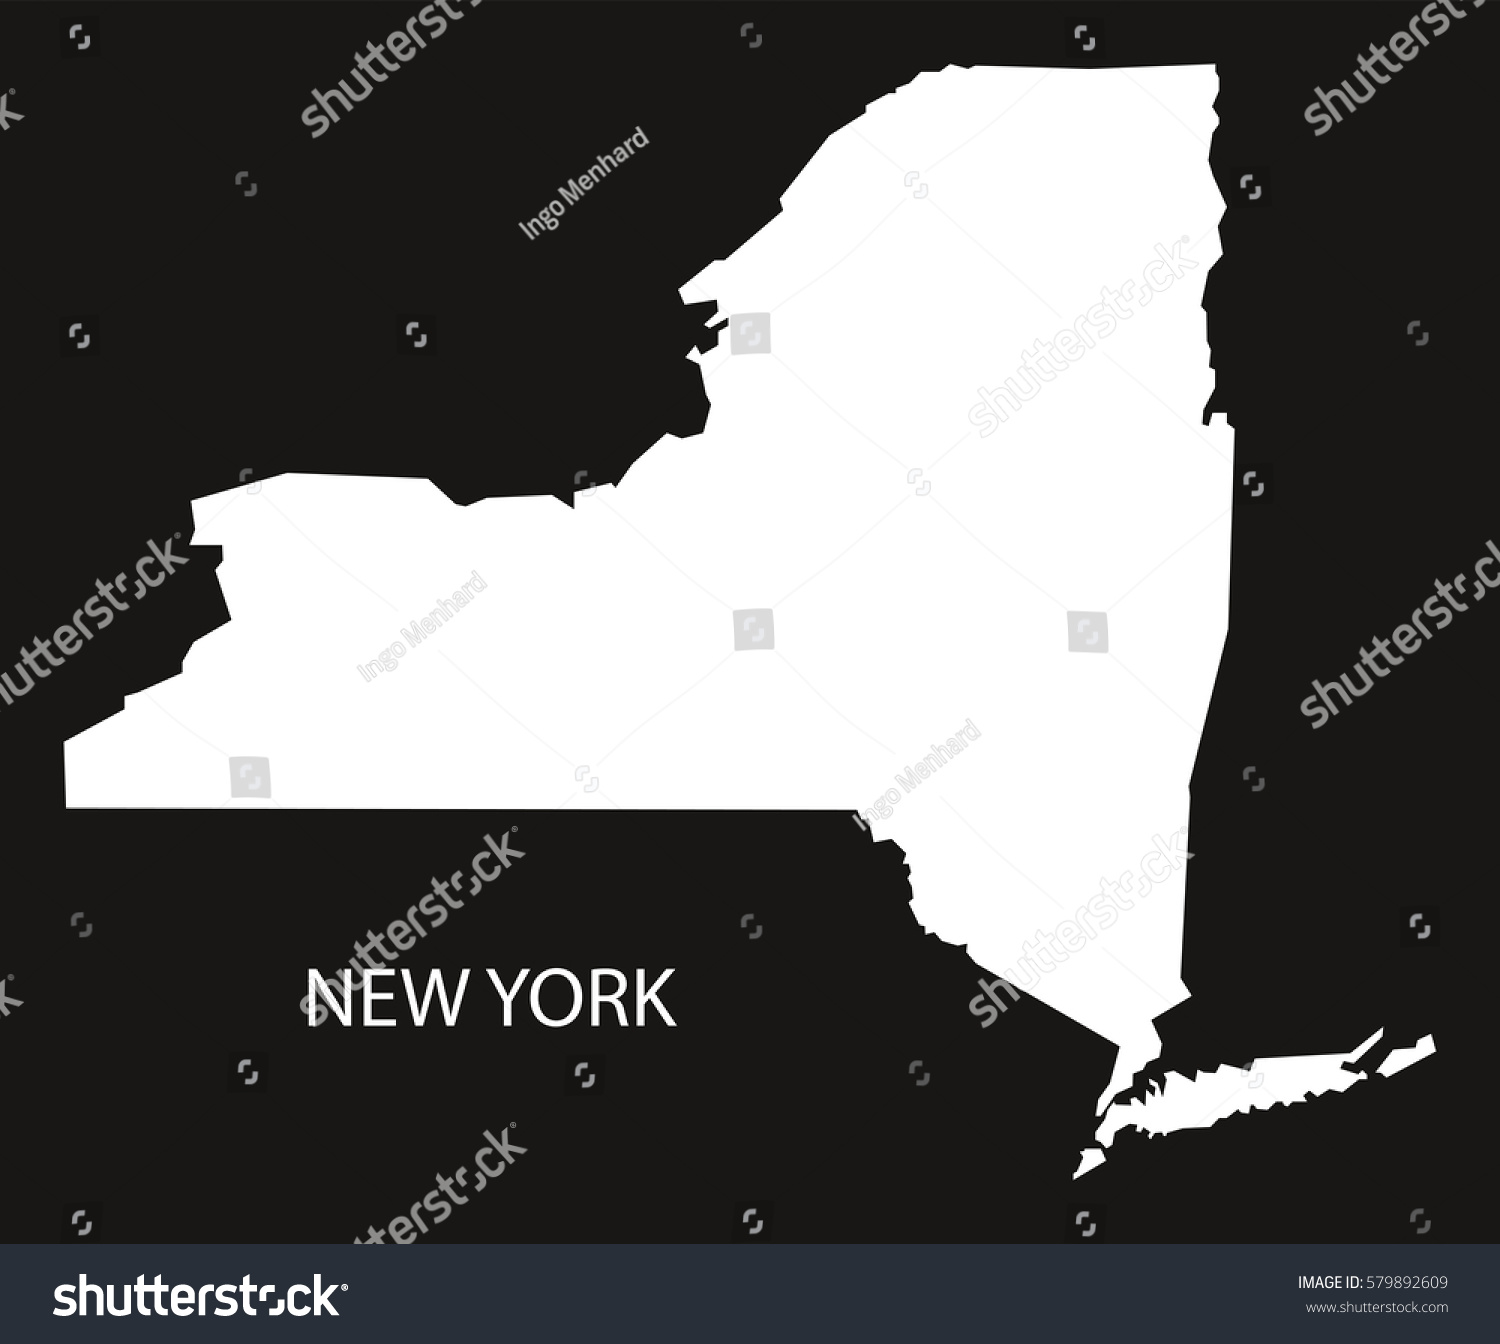 New York Usa Map Black Inverted Stock Vector Shutterstock - Usa map new york